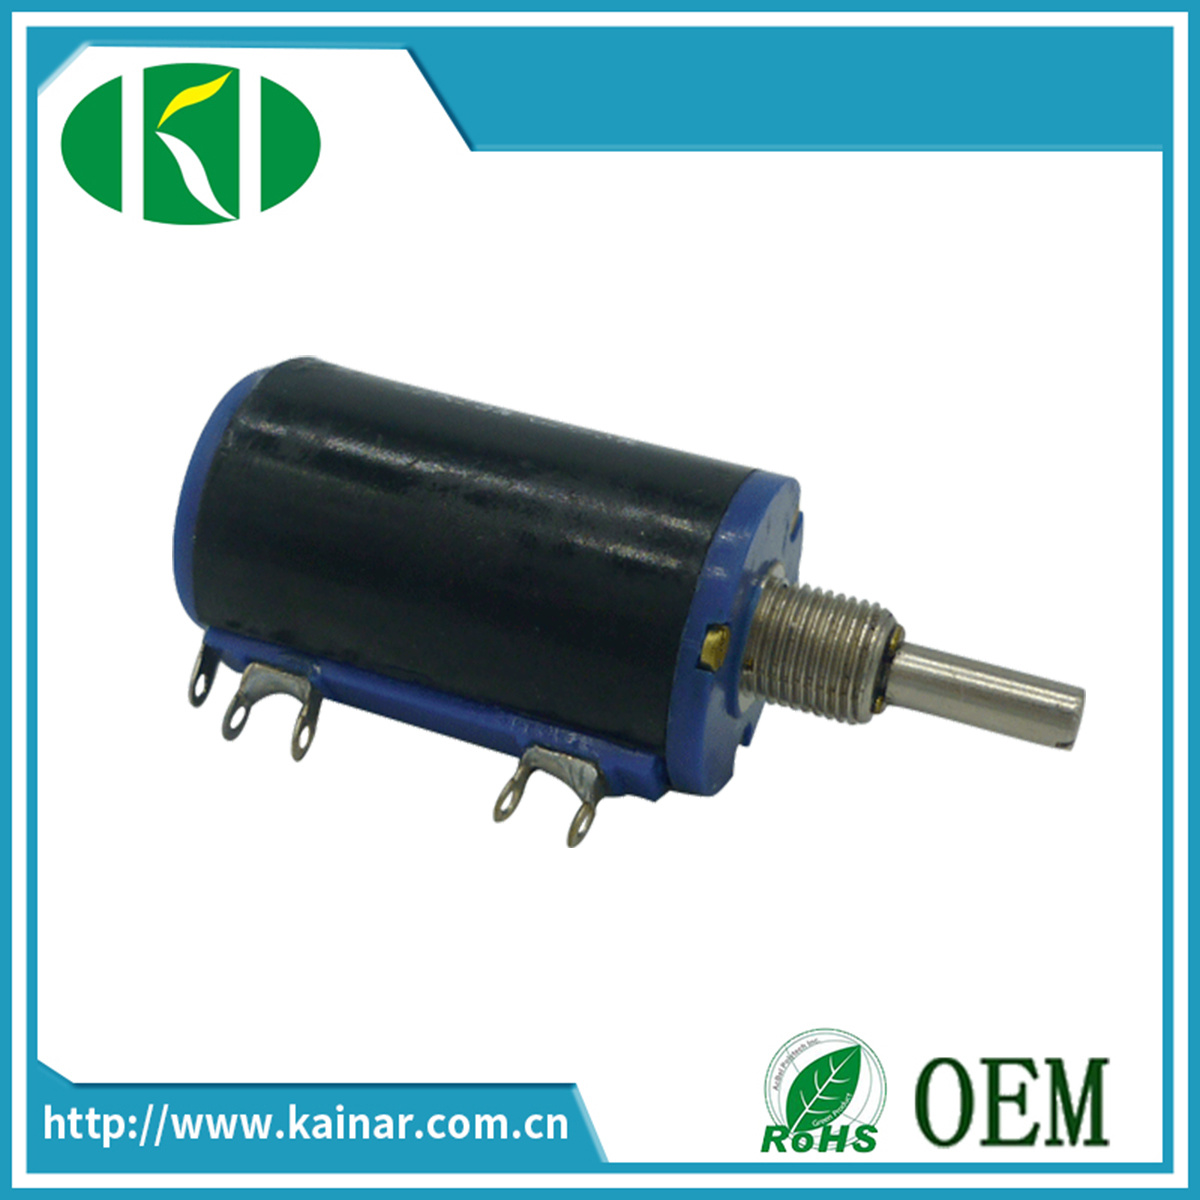 Wxd3-13 10 Turns Wire Wound Potentiometer